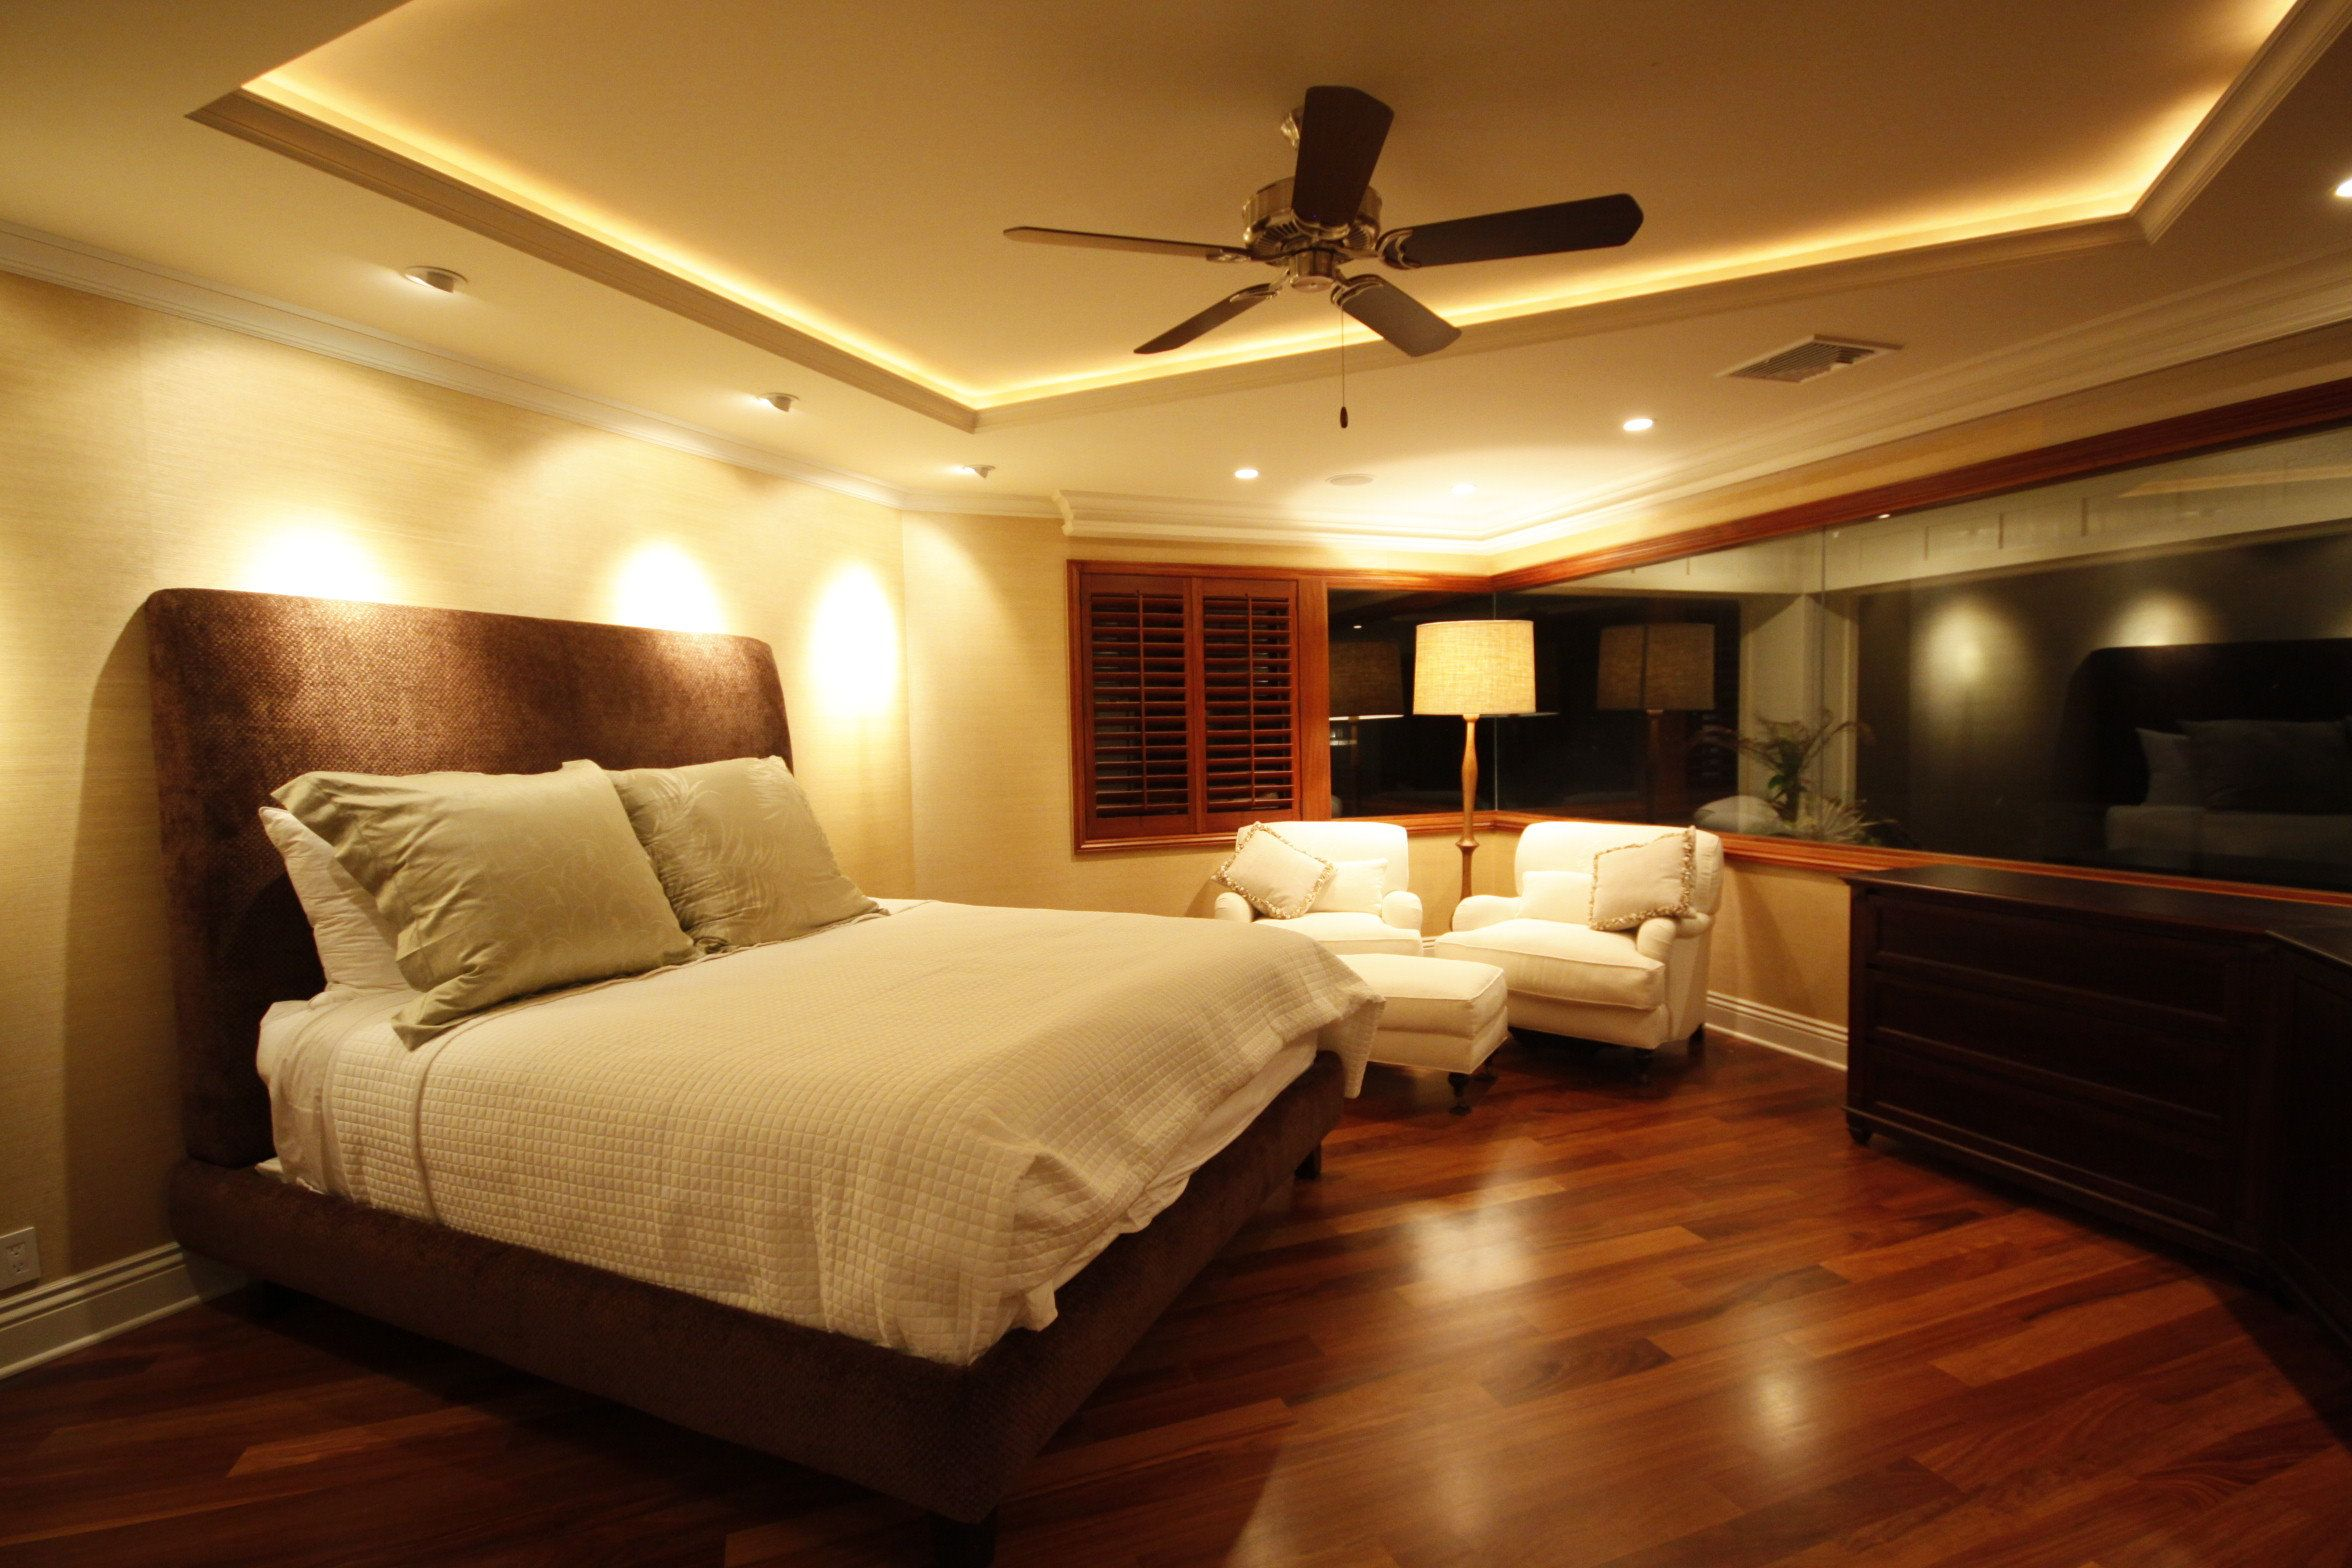 Appealing master bedroom modern decor with wooden floors also luxury master bed also sweet pair - Master bedroom ceiling designs ...